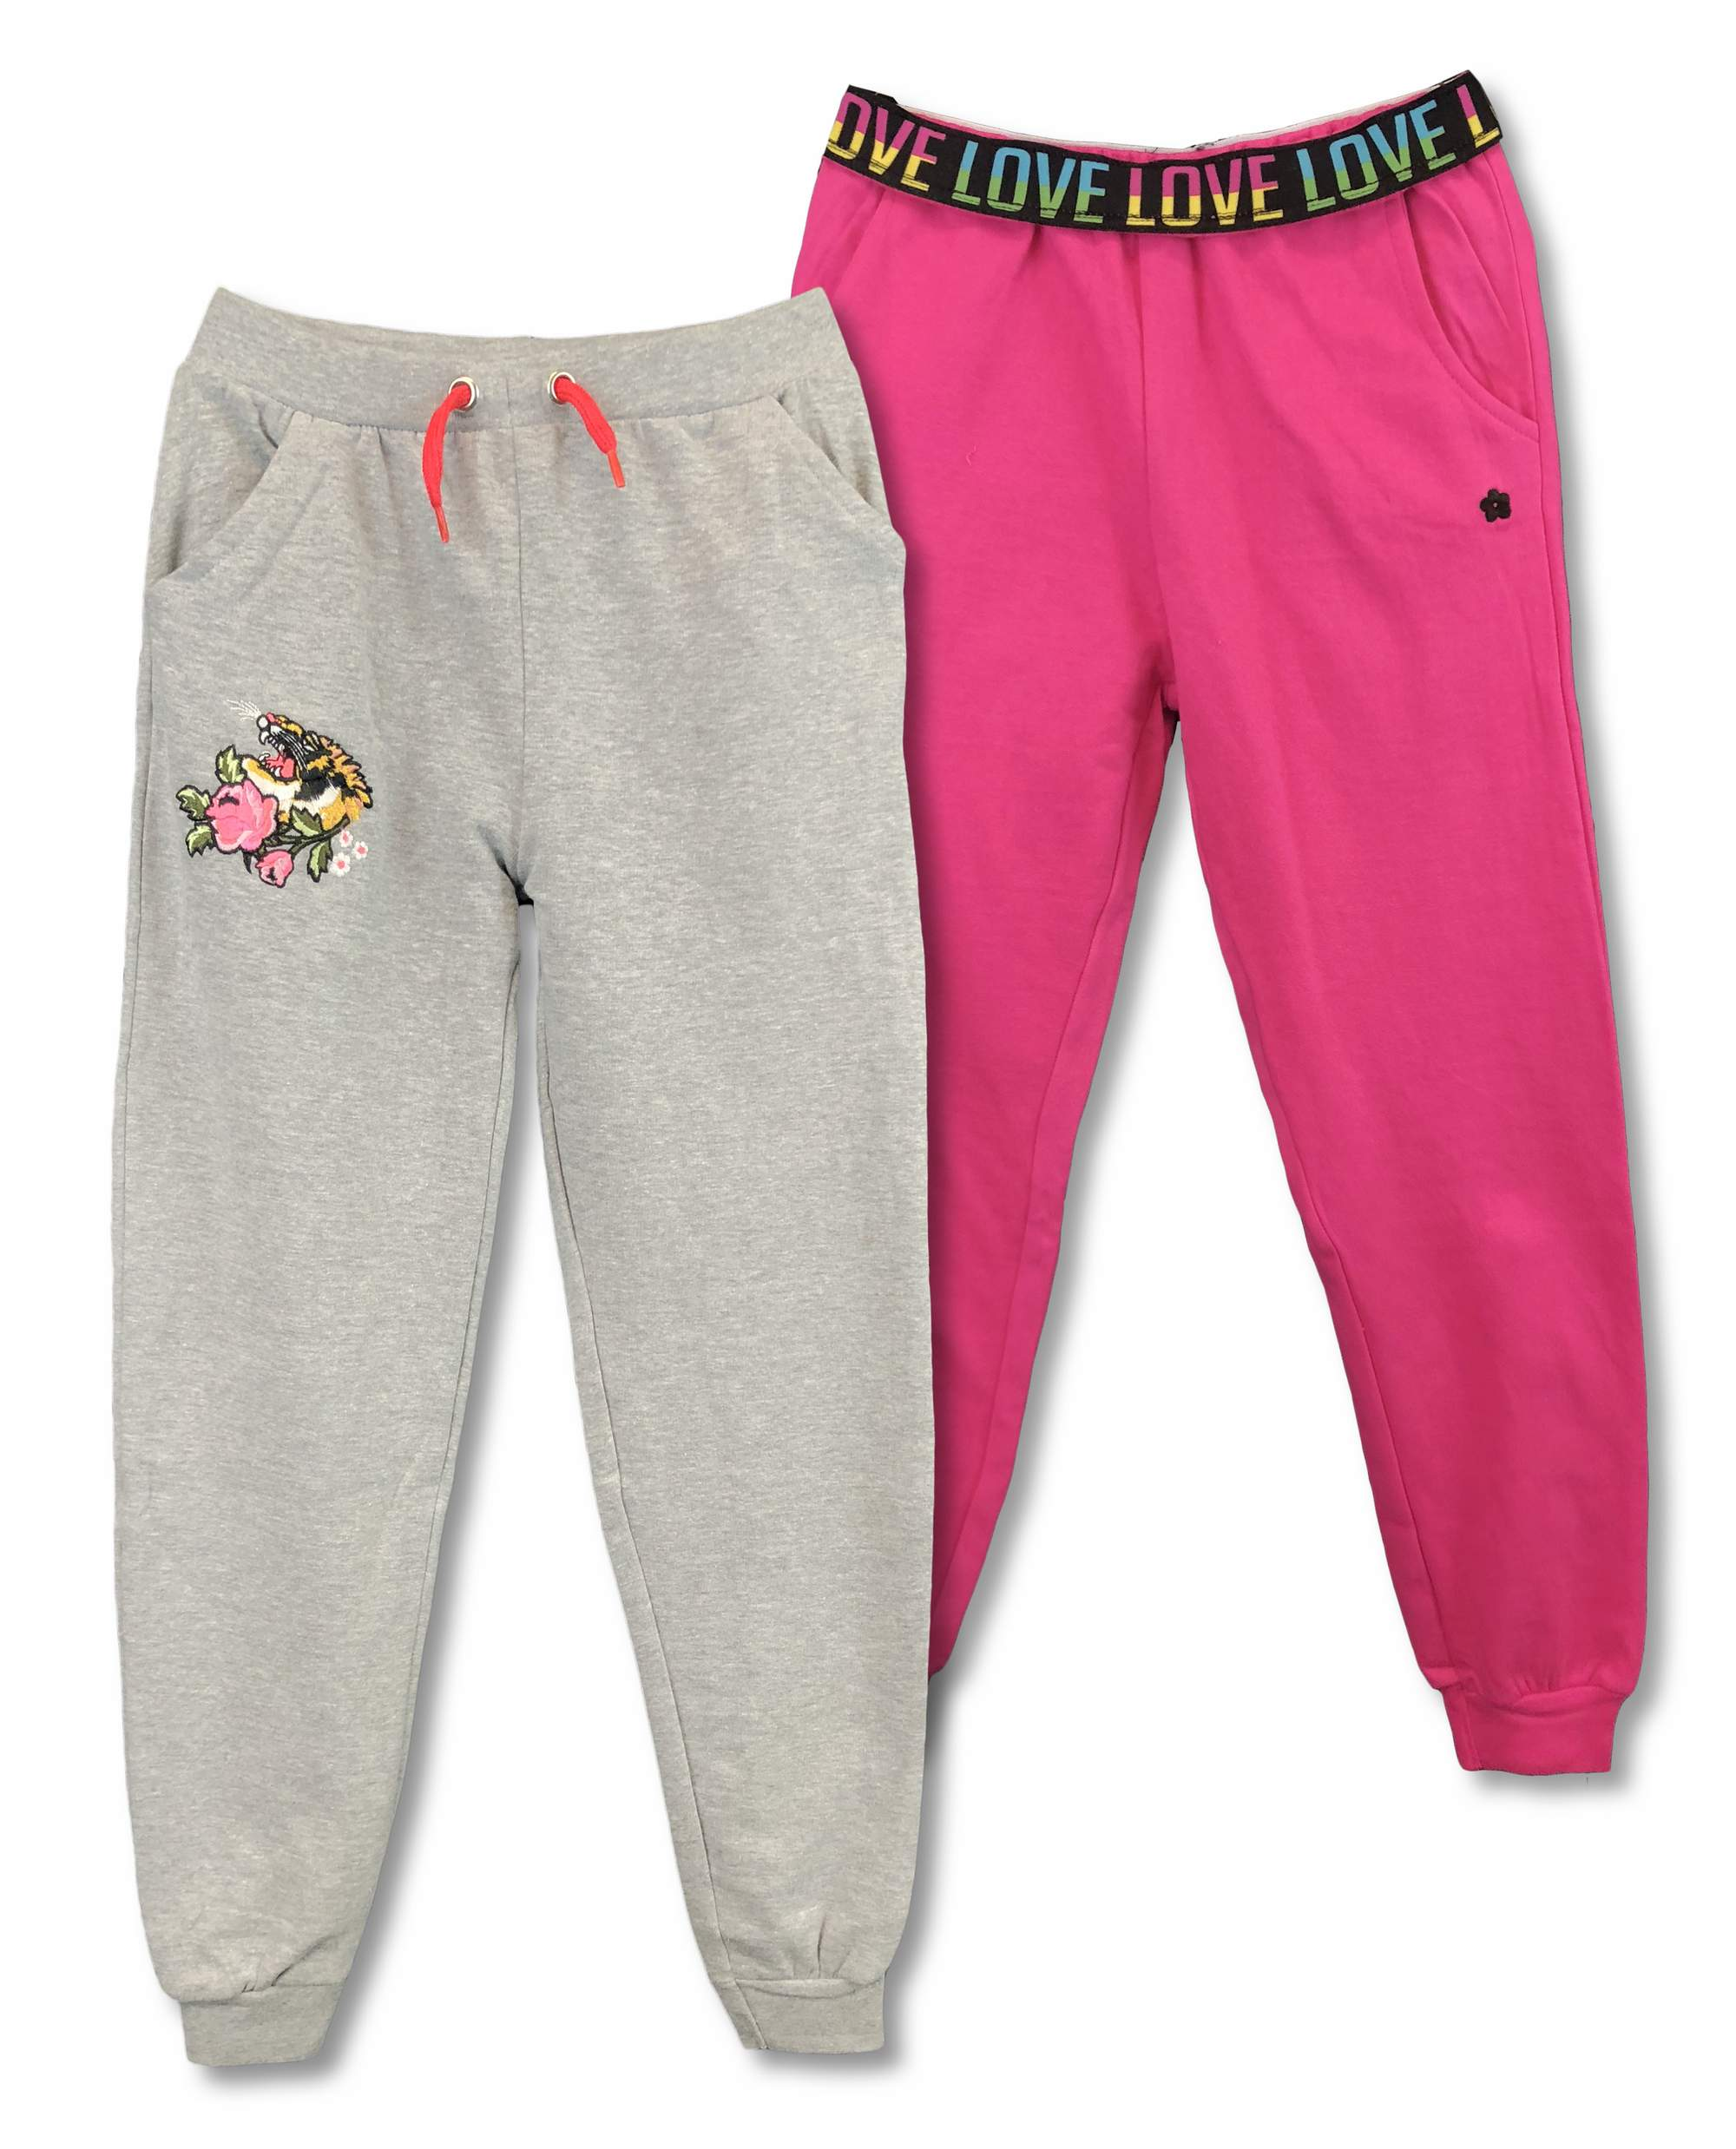 French Terry Pull-On Jogger Pants, 2-Pack (Big Girls)